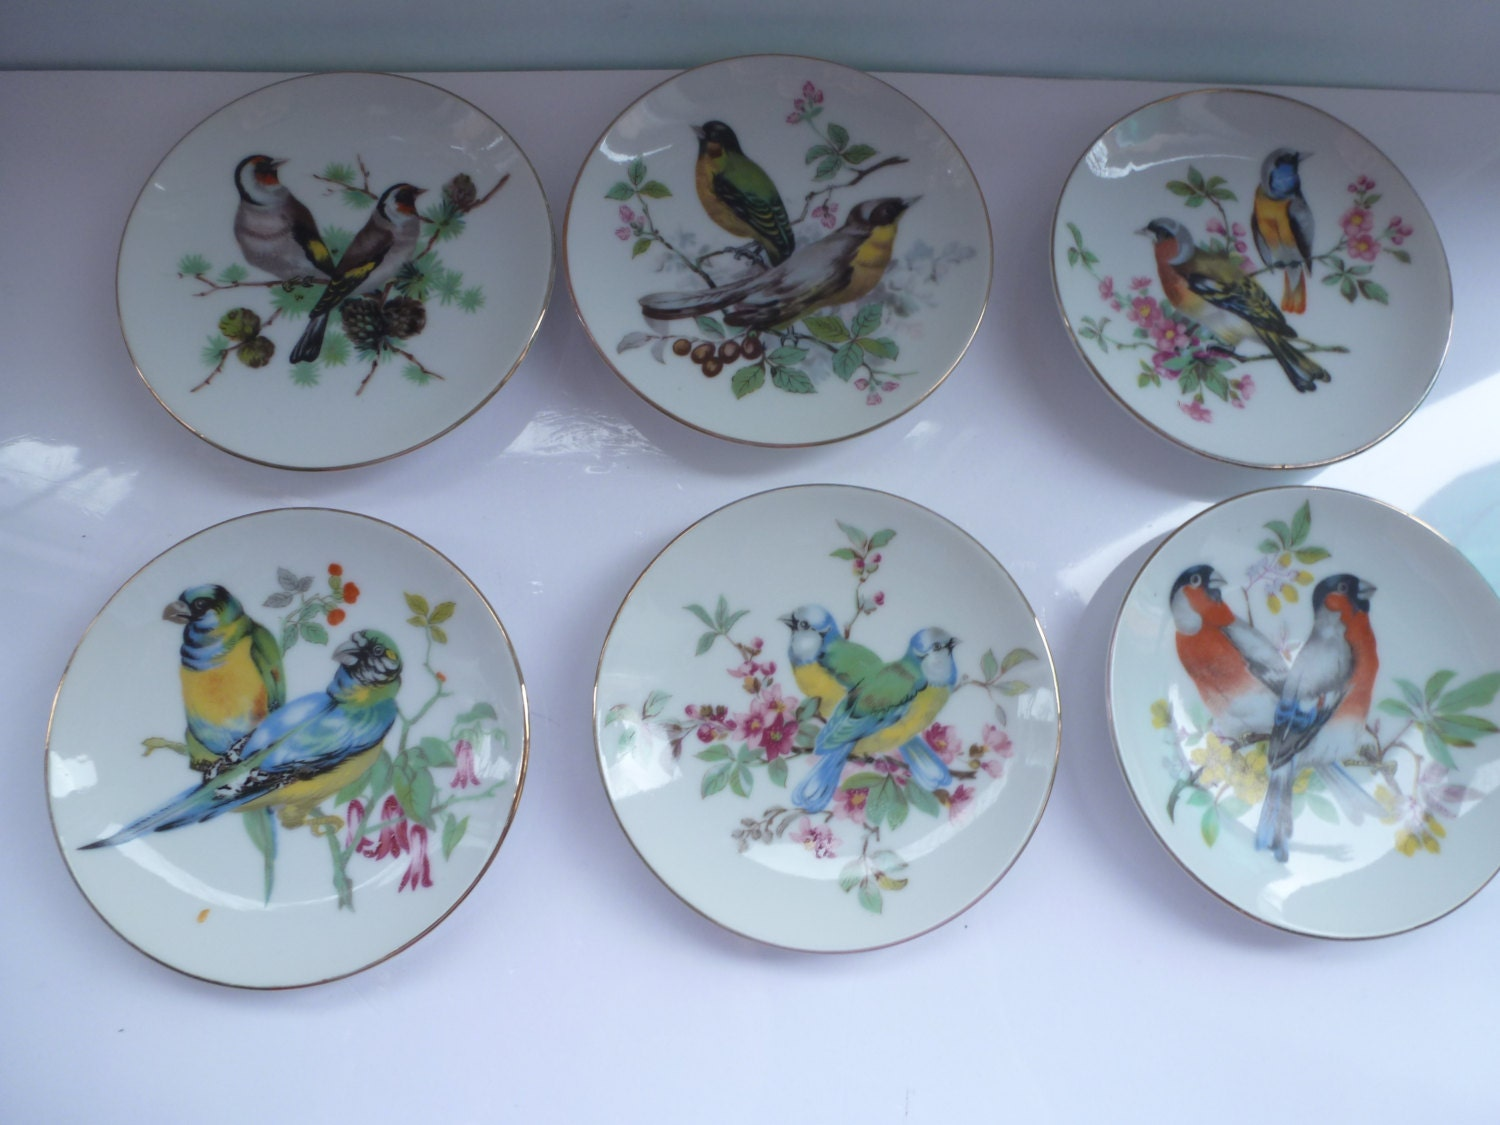 Decorative Wall Plates For Hanging: Vintage Plates Decorative Hanging Plates With Bird